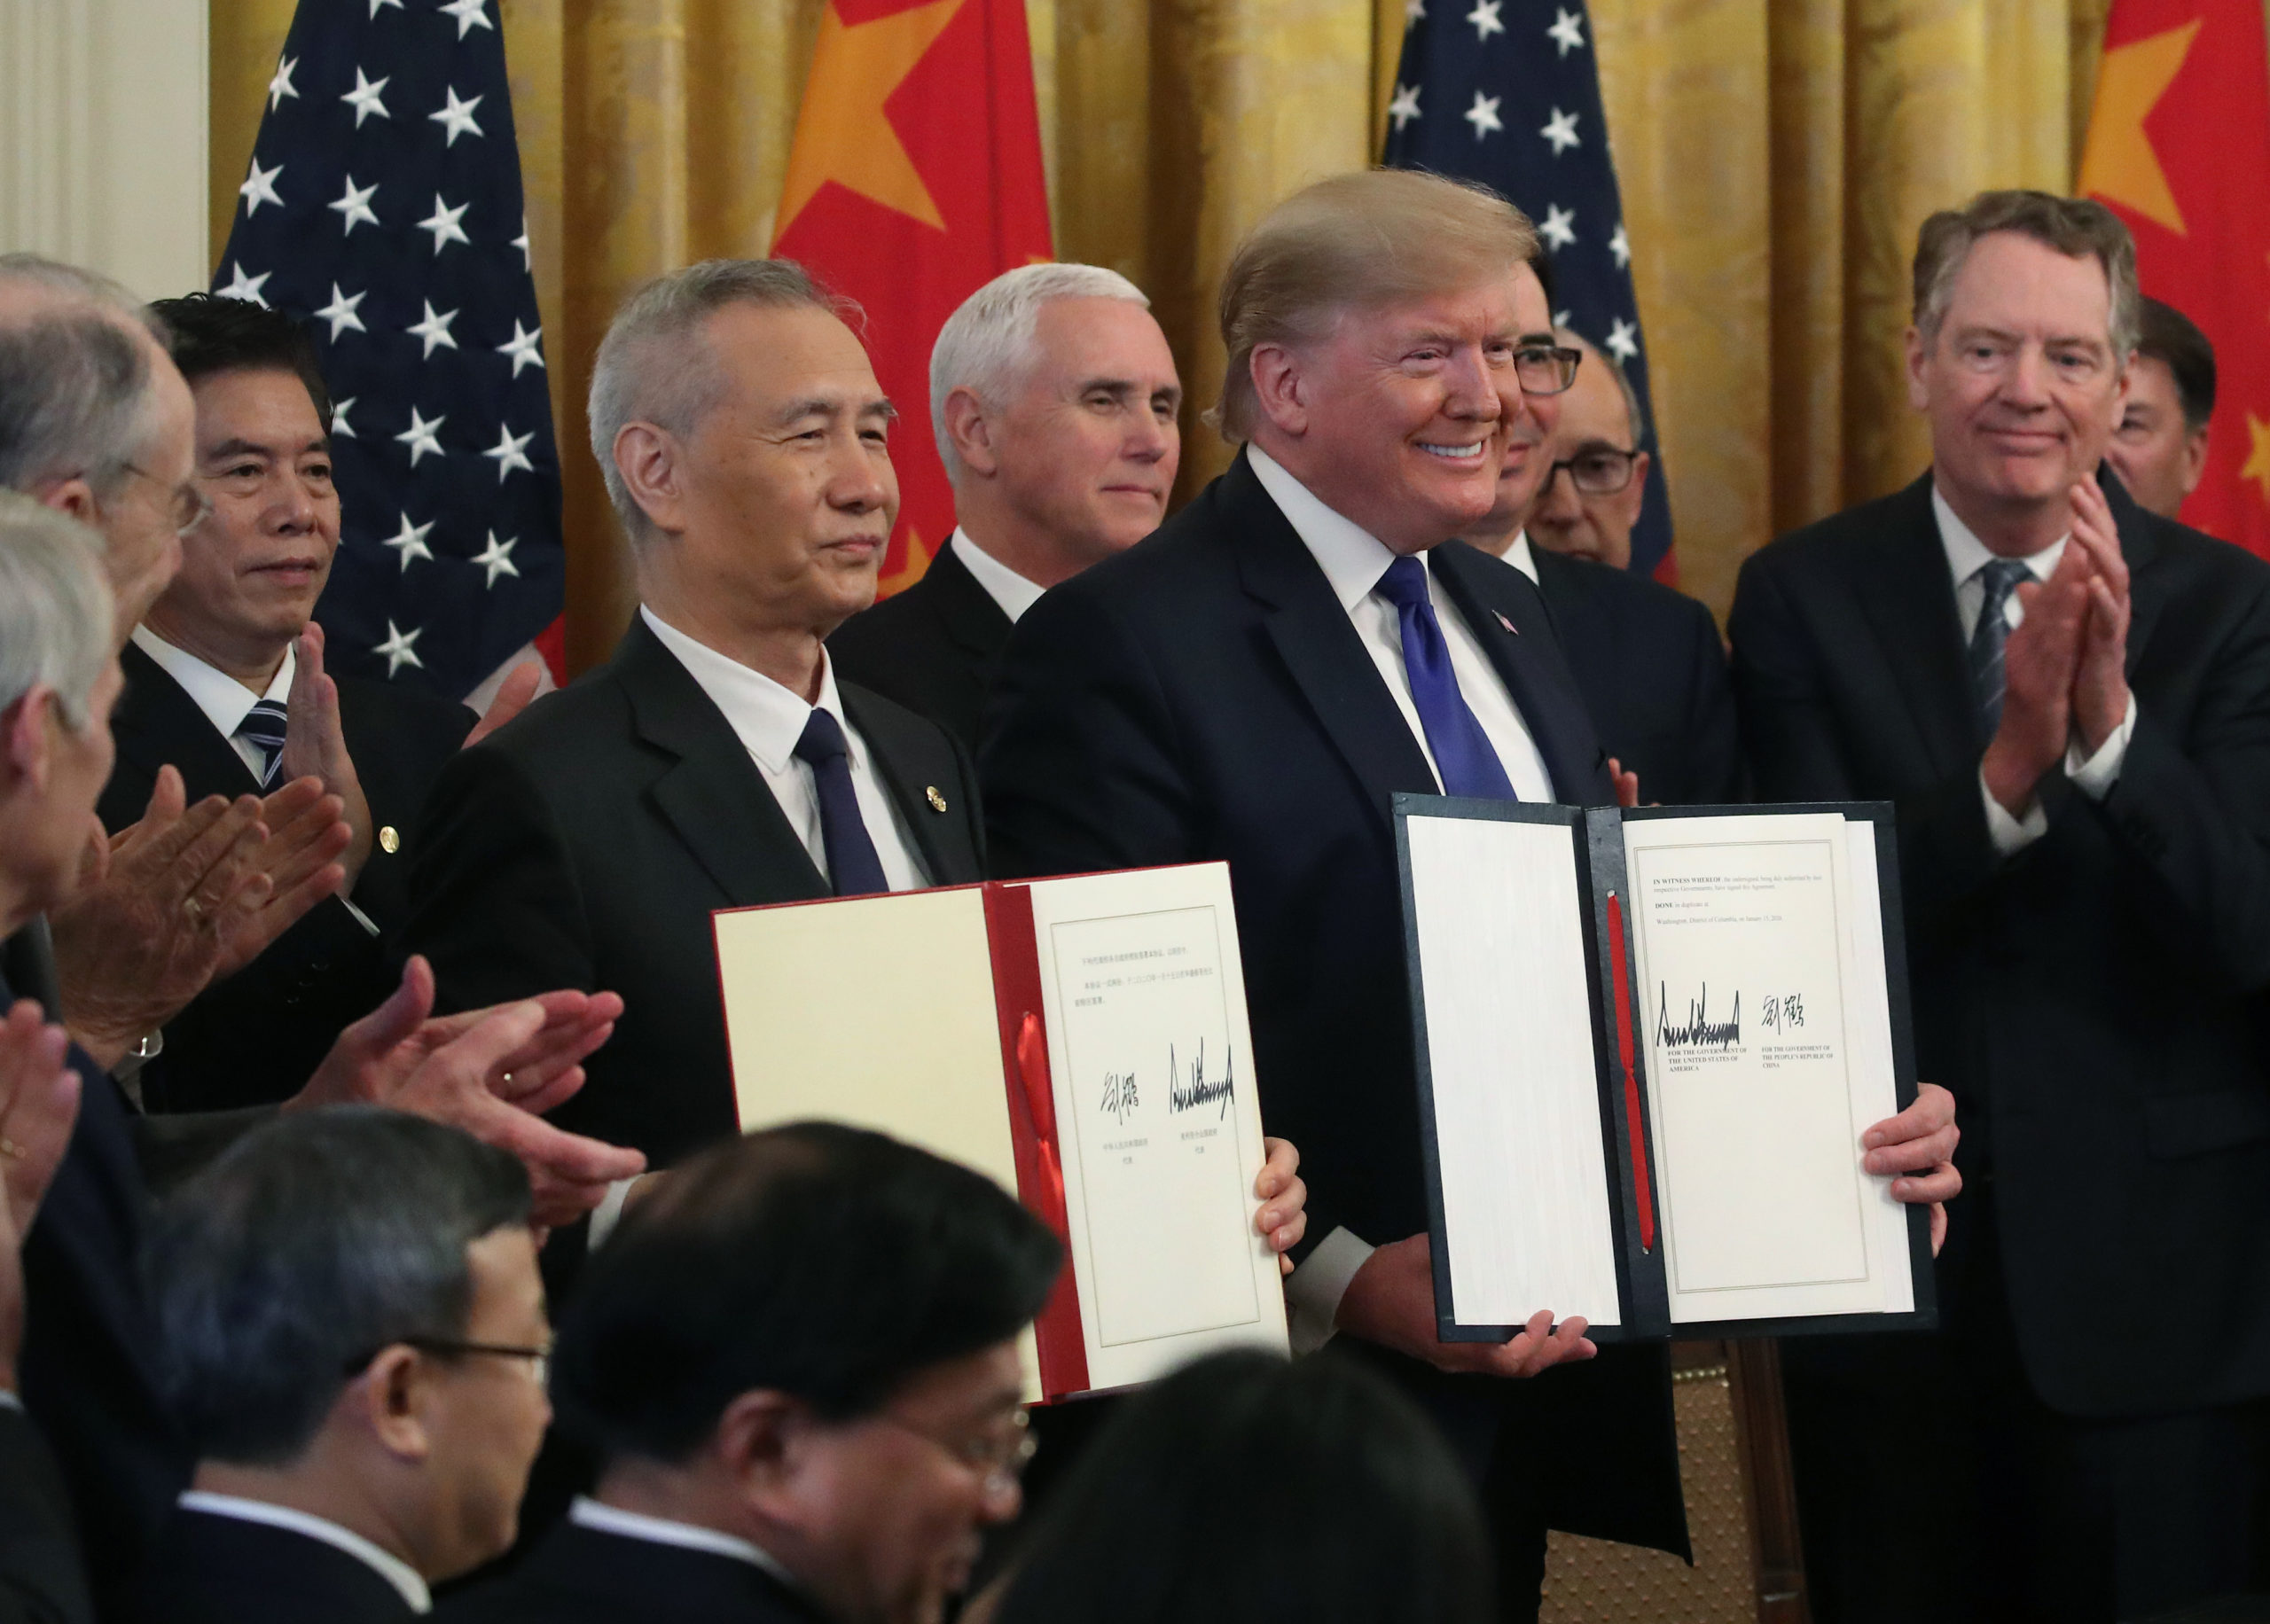 Former President Donald Trump and Chinese Vice Premier Liu He, hold up signed agreements of the phase one trade deal between the U.S. and China on Jan. 15, 2020 in Washington, D.C. (Mark Wilson/Getty Images)